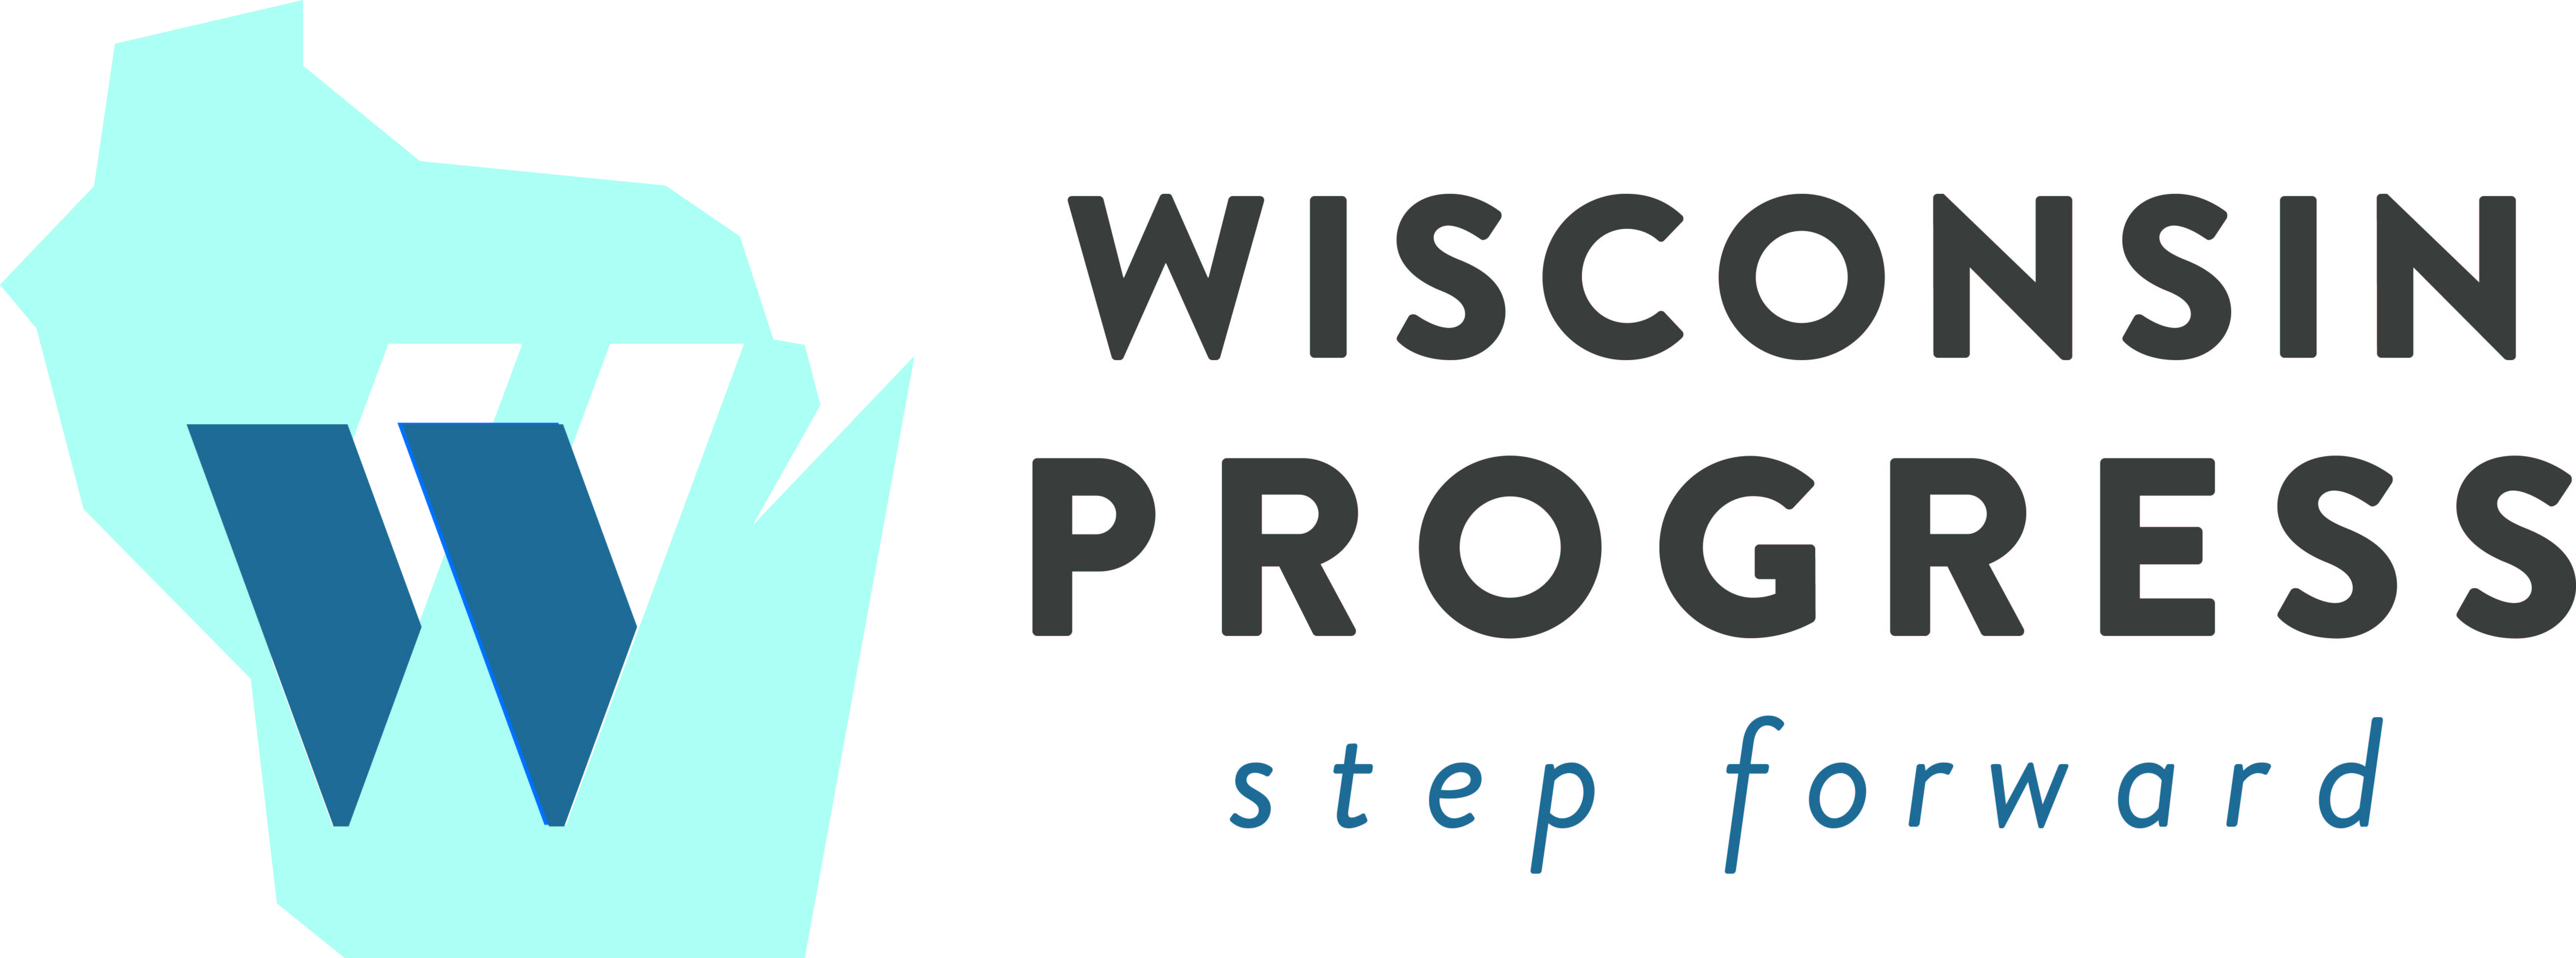 Wisconsin Progress